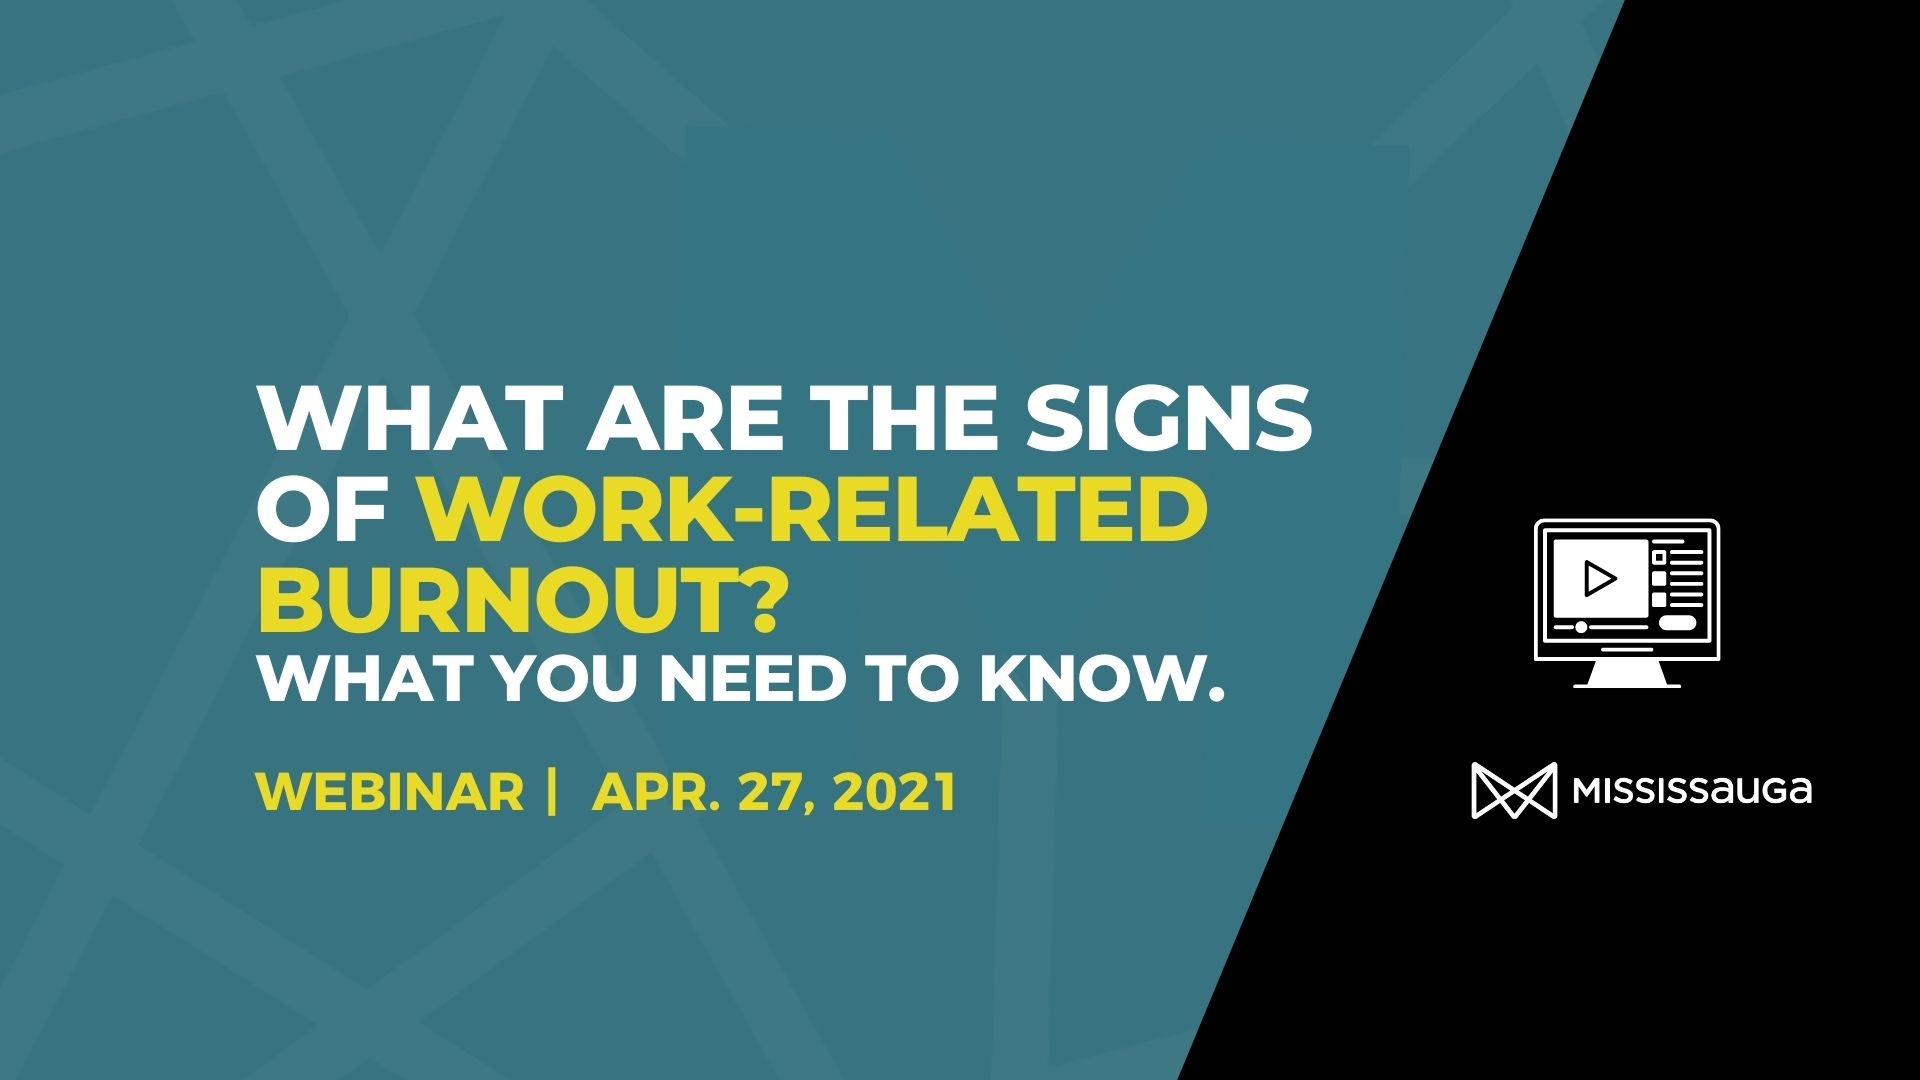 What are the Signs of Work-Related Burnout?  Webinar, Apr 27